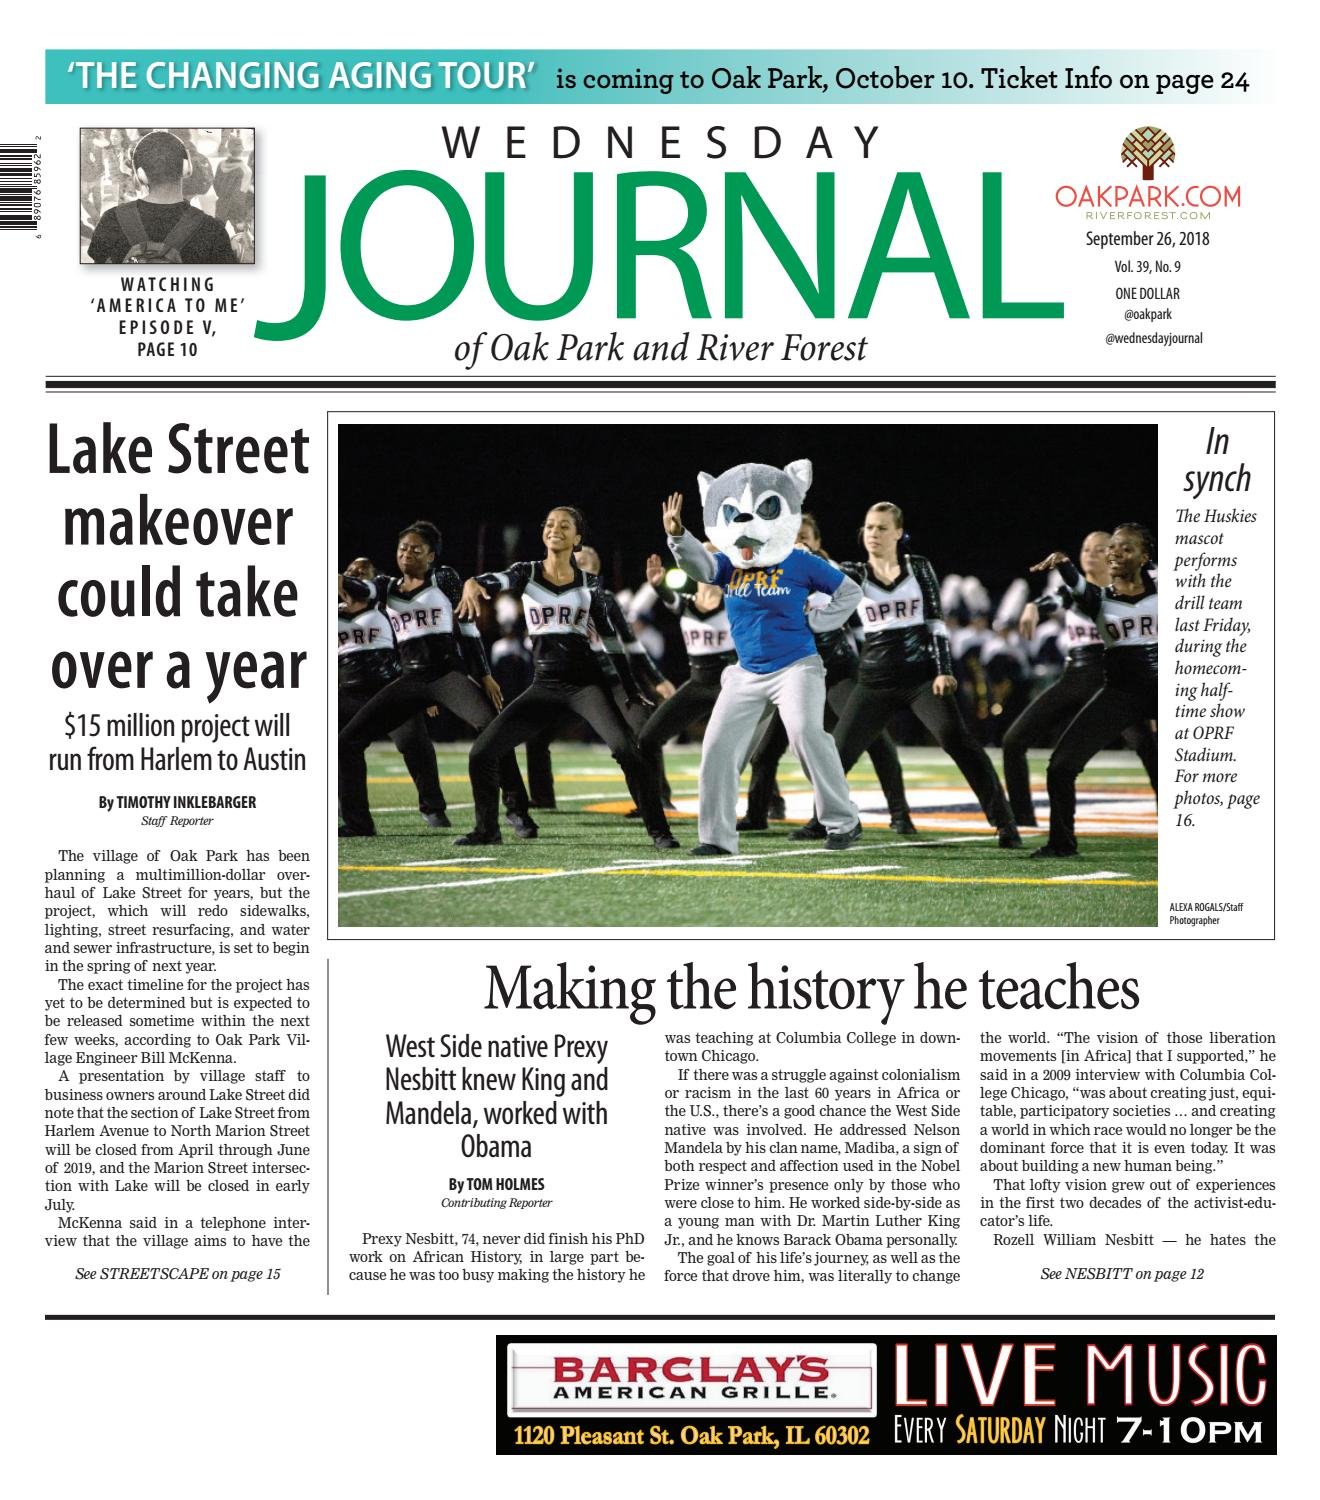 Comment Laver Grille Barbecue wednesday journal 092618wednesday journal - issuu